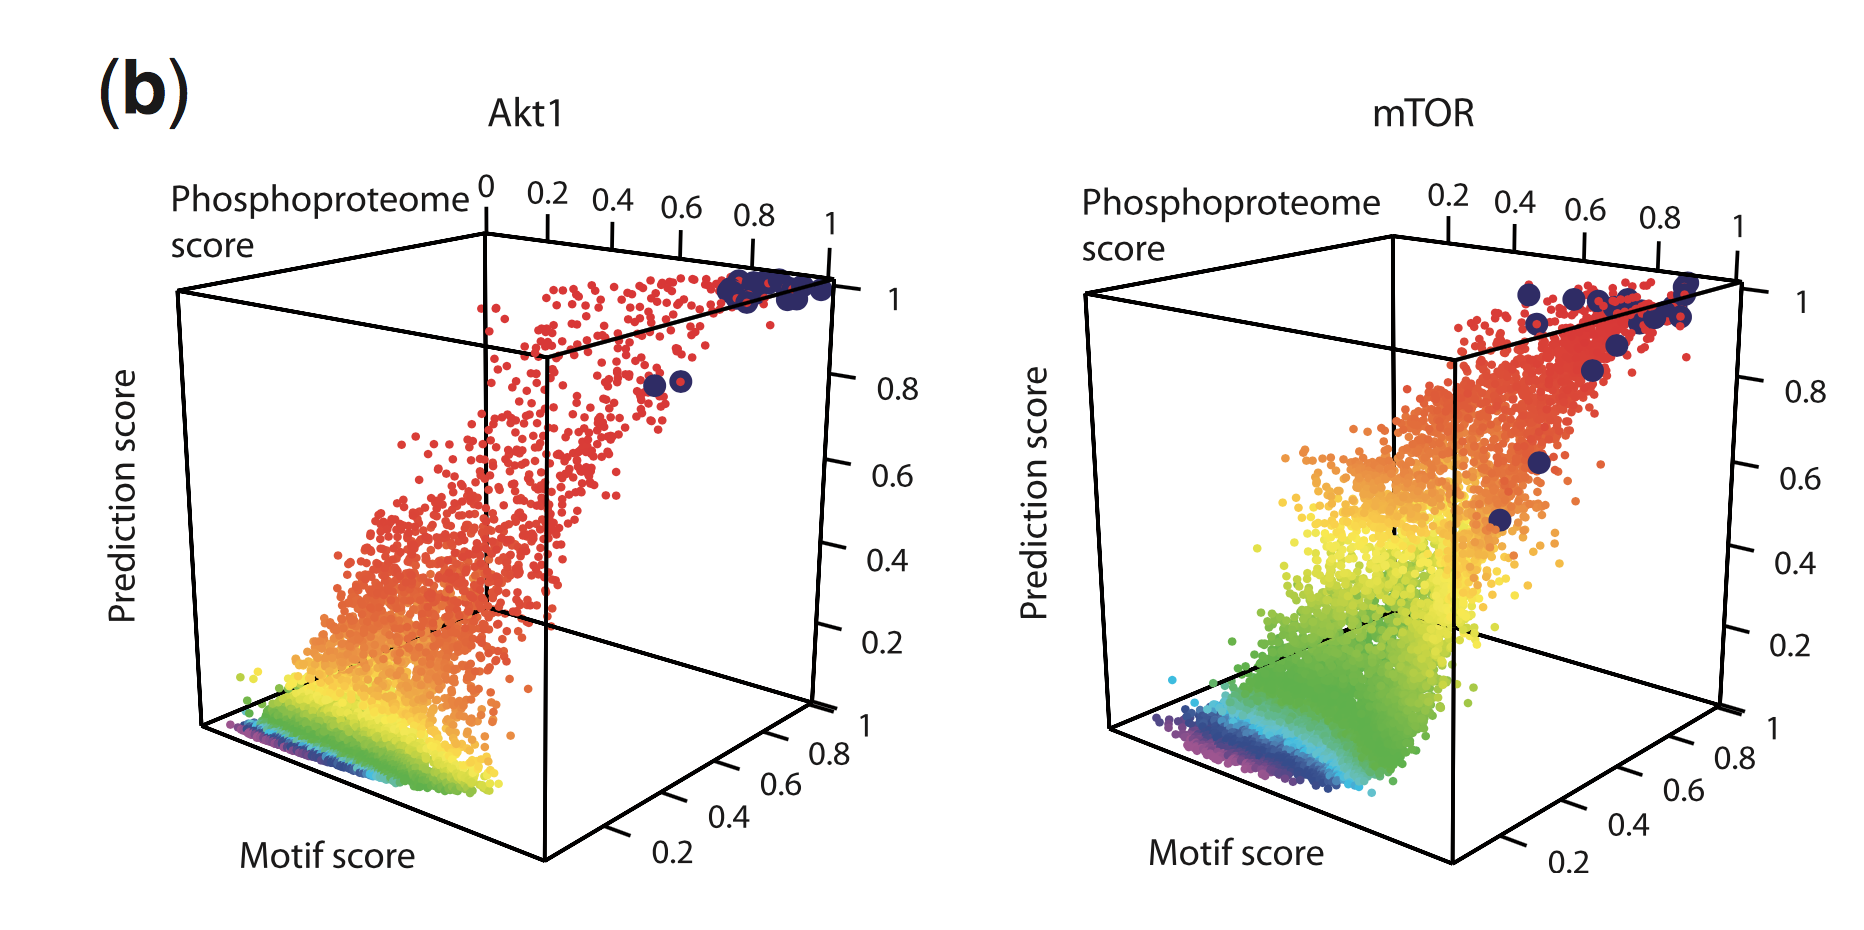 Prediction scores from a model predicting Akt and mTor substrates. Each point corresponds to a phosphorylation site and is rainbow colored by the value of the prediction score (Yang et al., Bioinformatics, 2015).